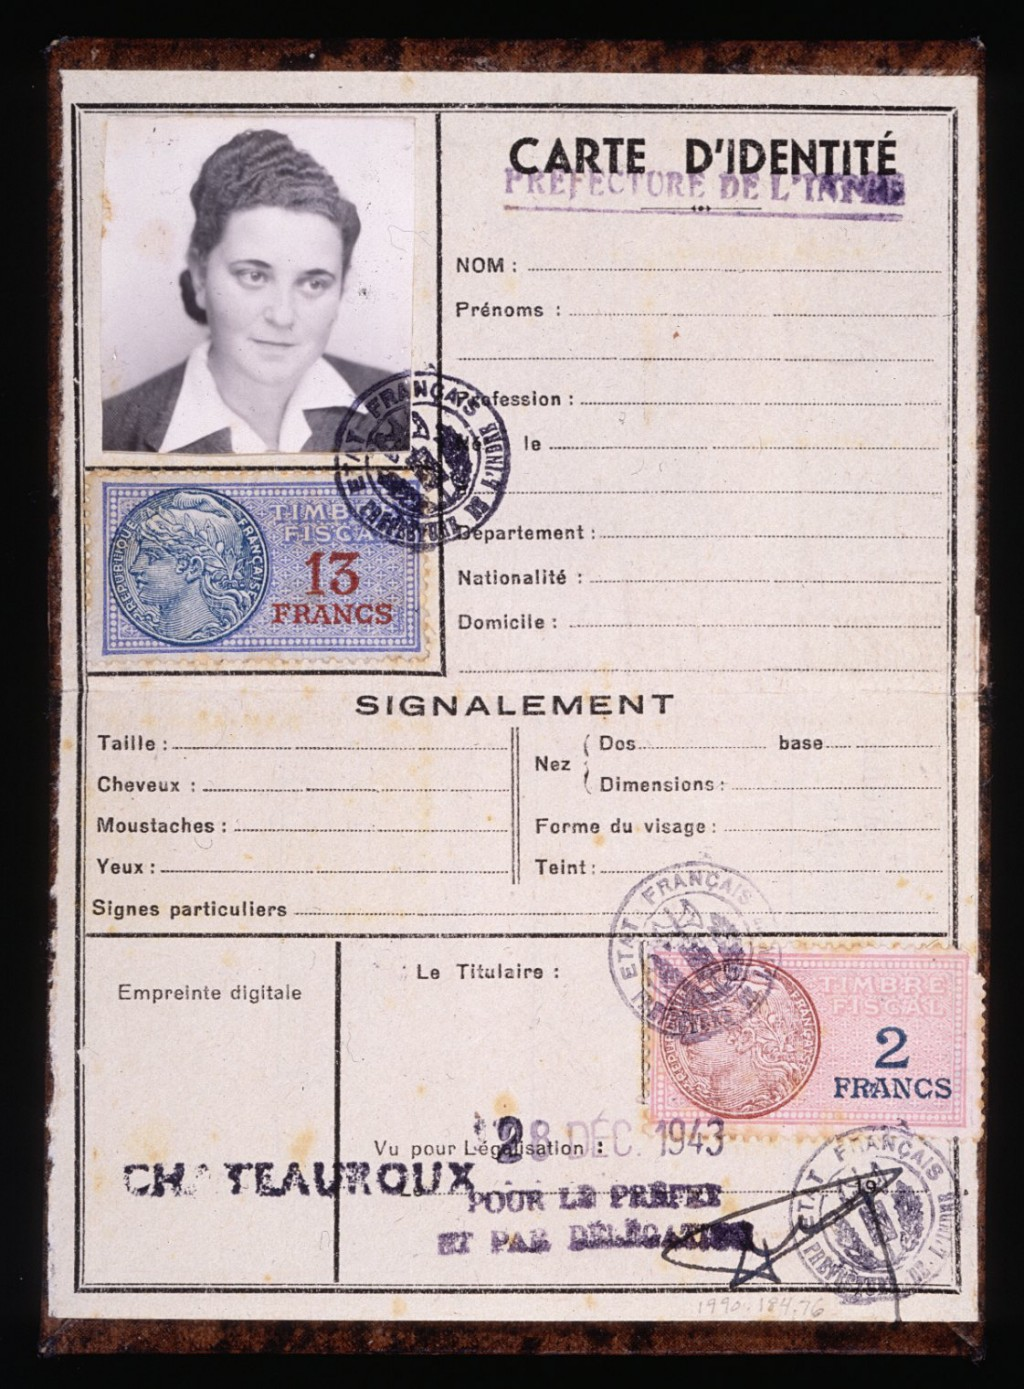 "<p>Simone Weil kept this blank identification card bearing her picture in case her cover as ""Simone Werlin"" were blown and she needed to establish a new false identity. Both resistance workers and sympathetic government employees provided her the necessary stamps and signatures. Such forged documents assisted Weil in her work rescuing Jewish children as a member of the relief and rescue organization Oeuvre de Secours aux Enfants (Children's Aid Society; OSE).</p>"